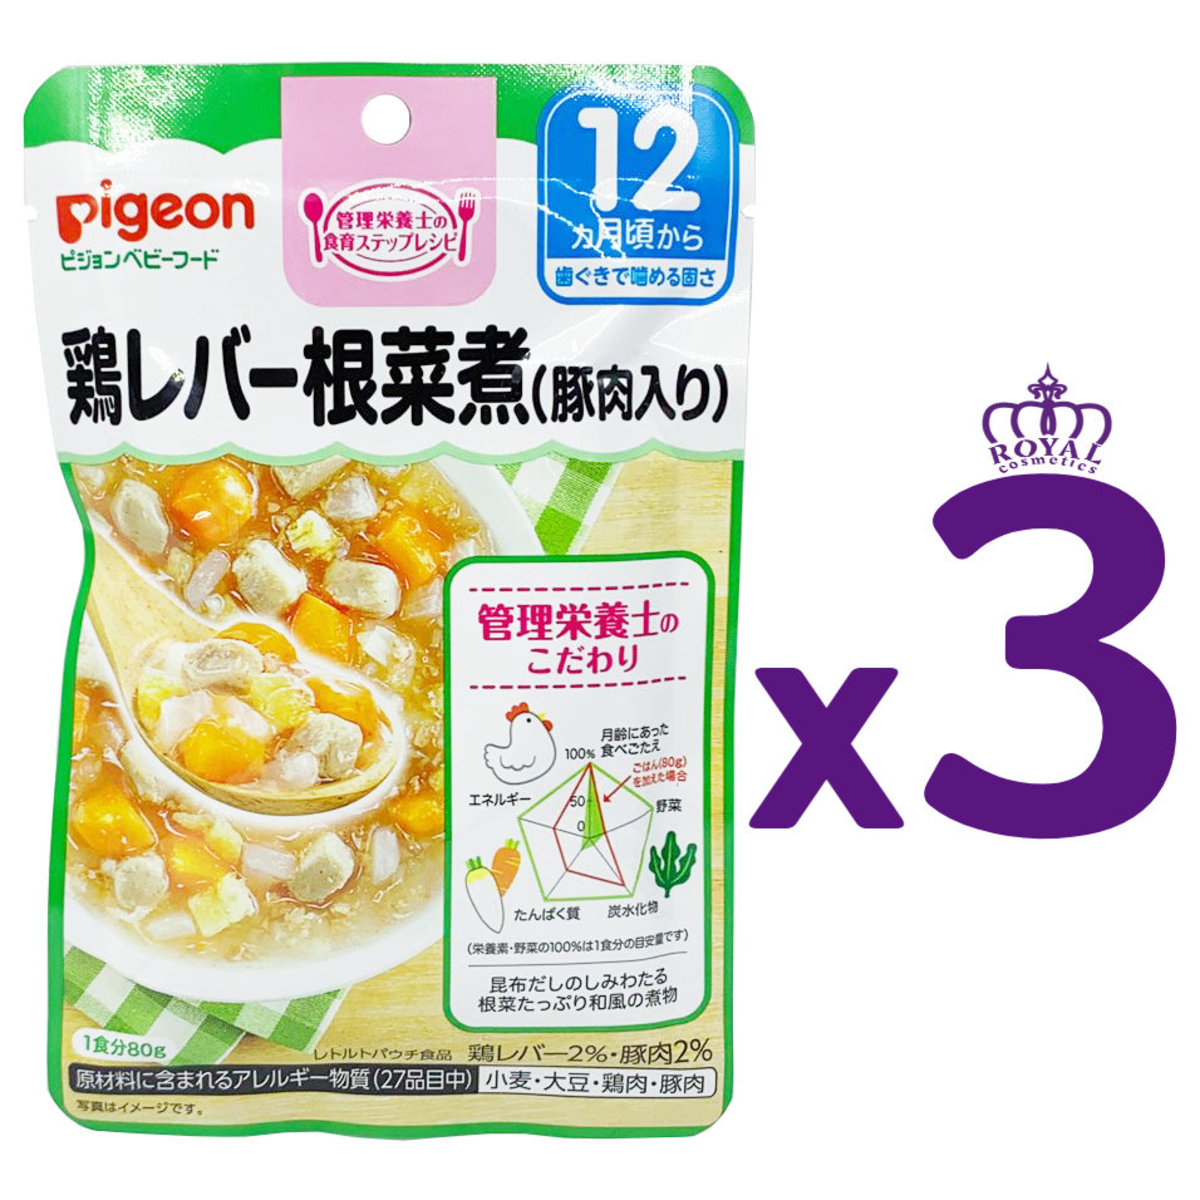 Chicken Lever and Vegetables(With Pork) #From 9 months 80g x3 (Best Before: 2021.03.12) (139267)